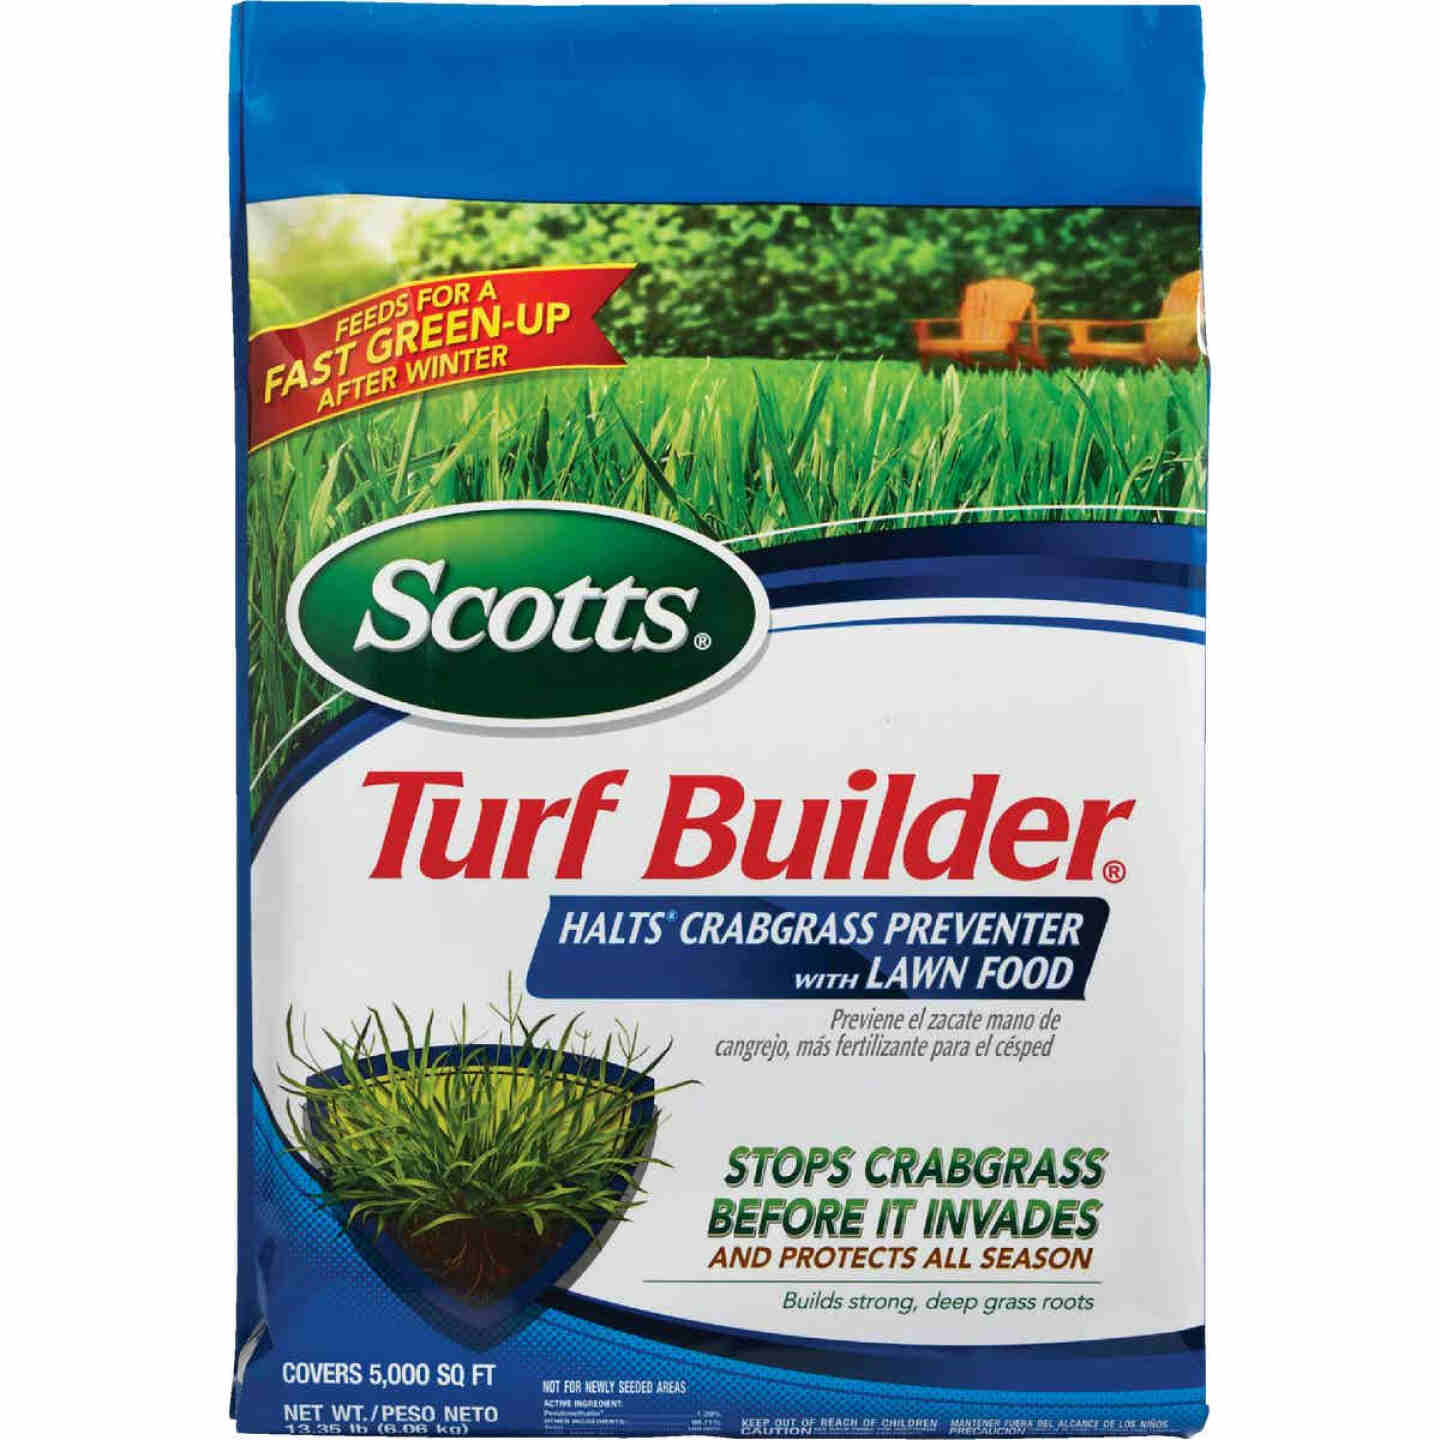 Scotts Turf Builder 13.35 Lb. 5000 Sq. Ft. 30-0-4 Lawn Fertilizer with Halts Crabgrass Preventer Image 4